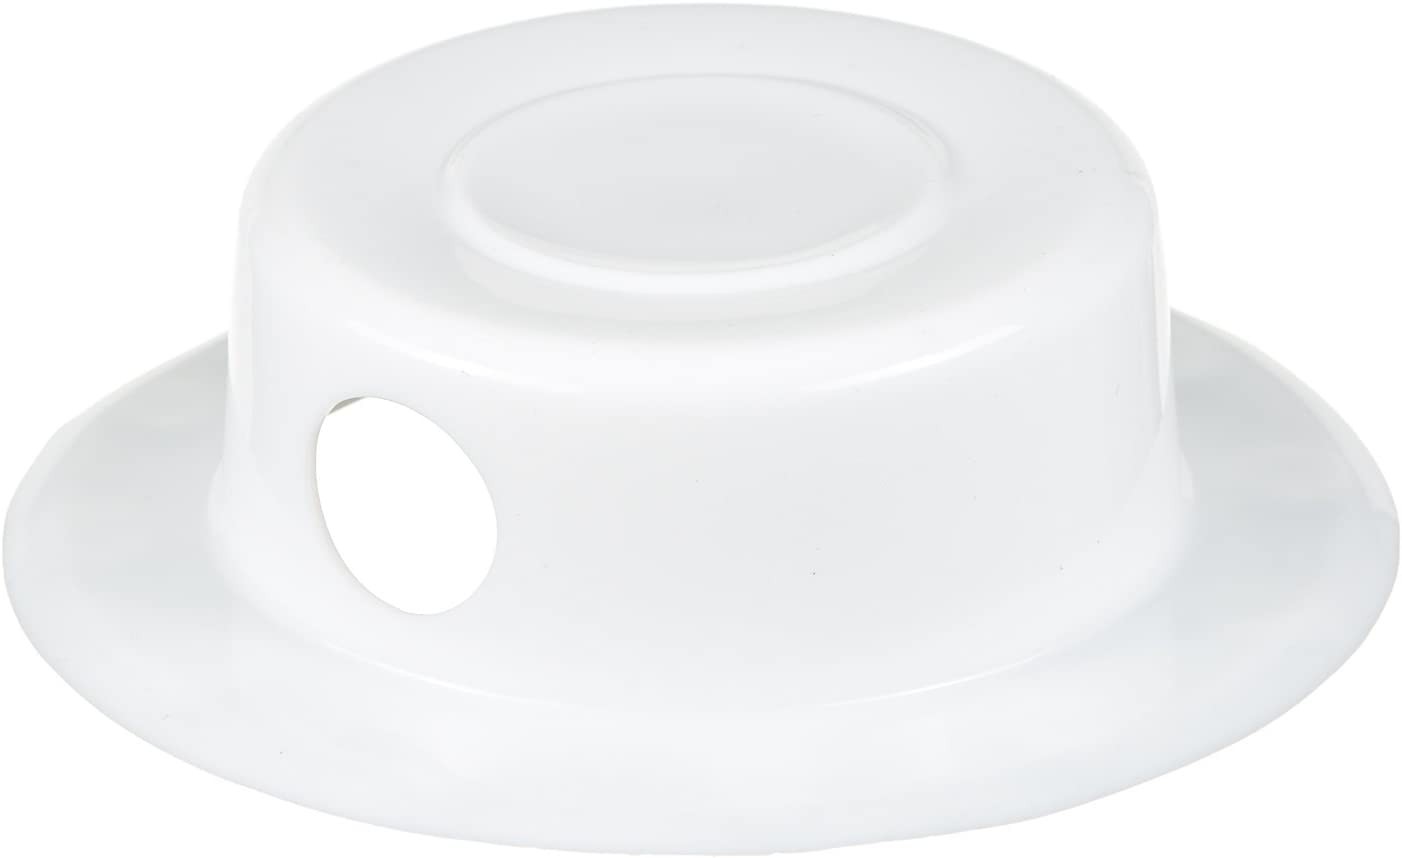 4 Diameter B.N.D TOP Bathtub Overflow Drain Cover Bath Drain Stoppers Spa Like More Inches of Water to Tub for Relax Deep Bath 100/% Recyclable White silicone